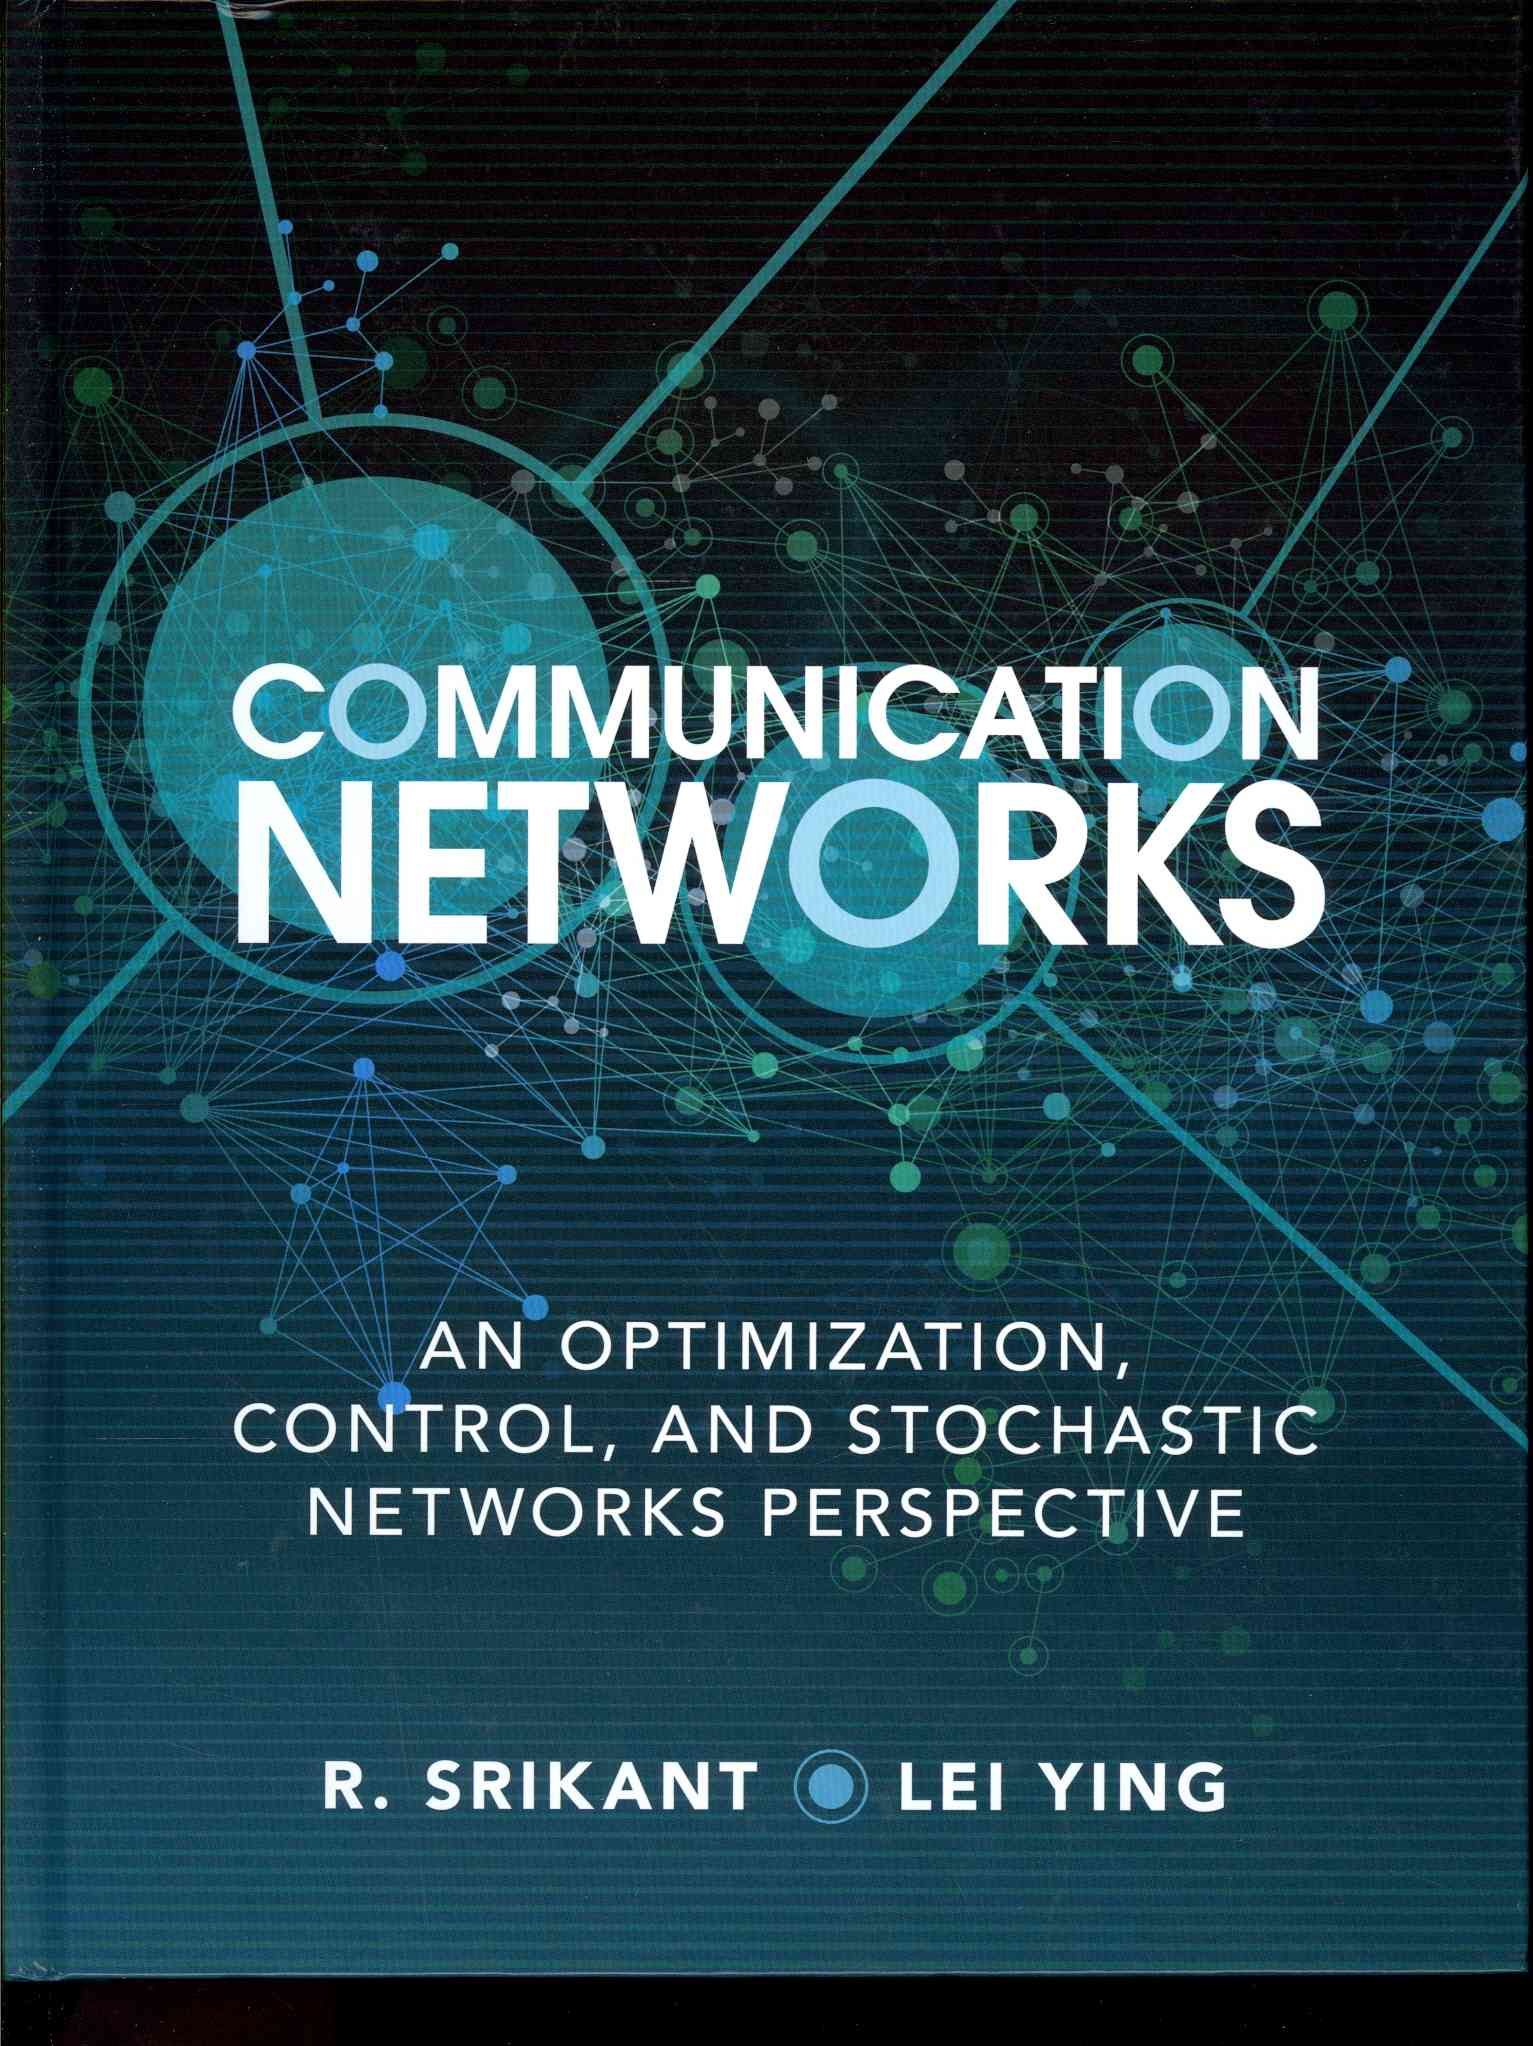 Communication Networks By Strikant, R./ Ying, Lei